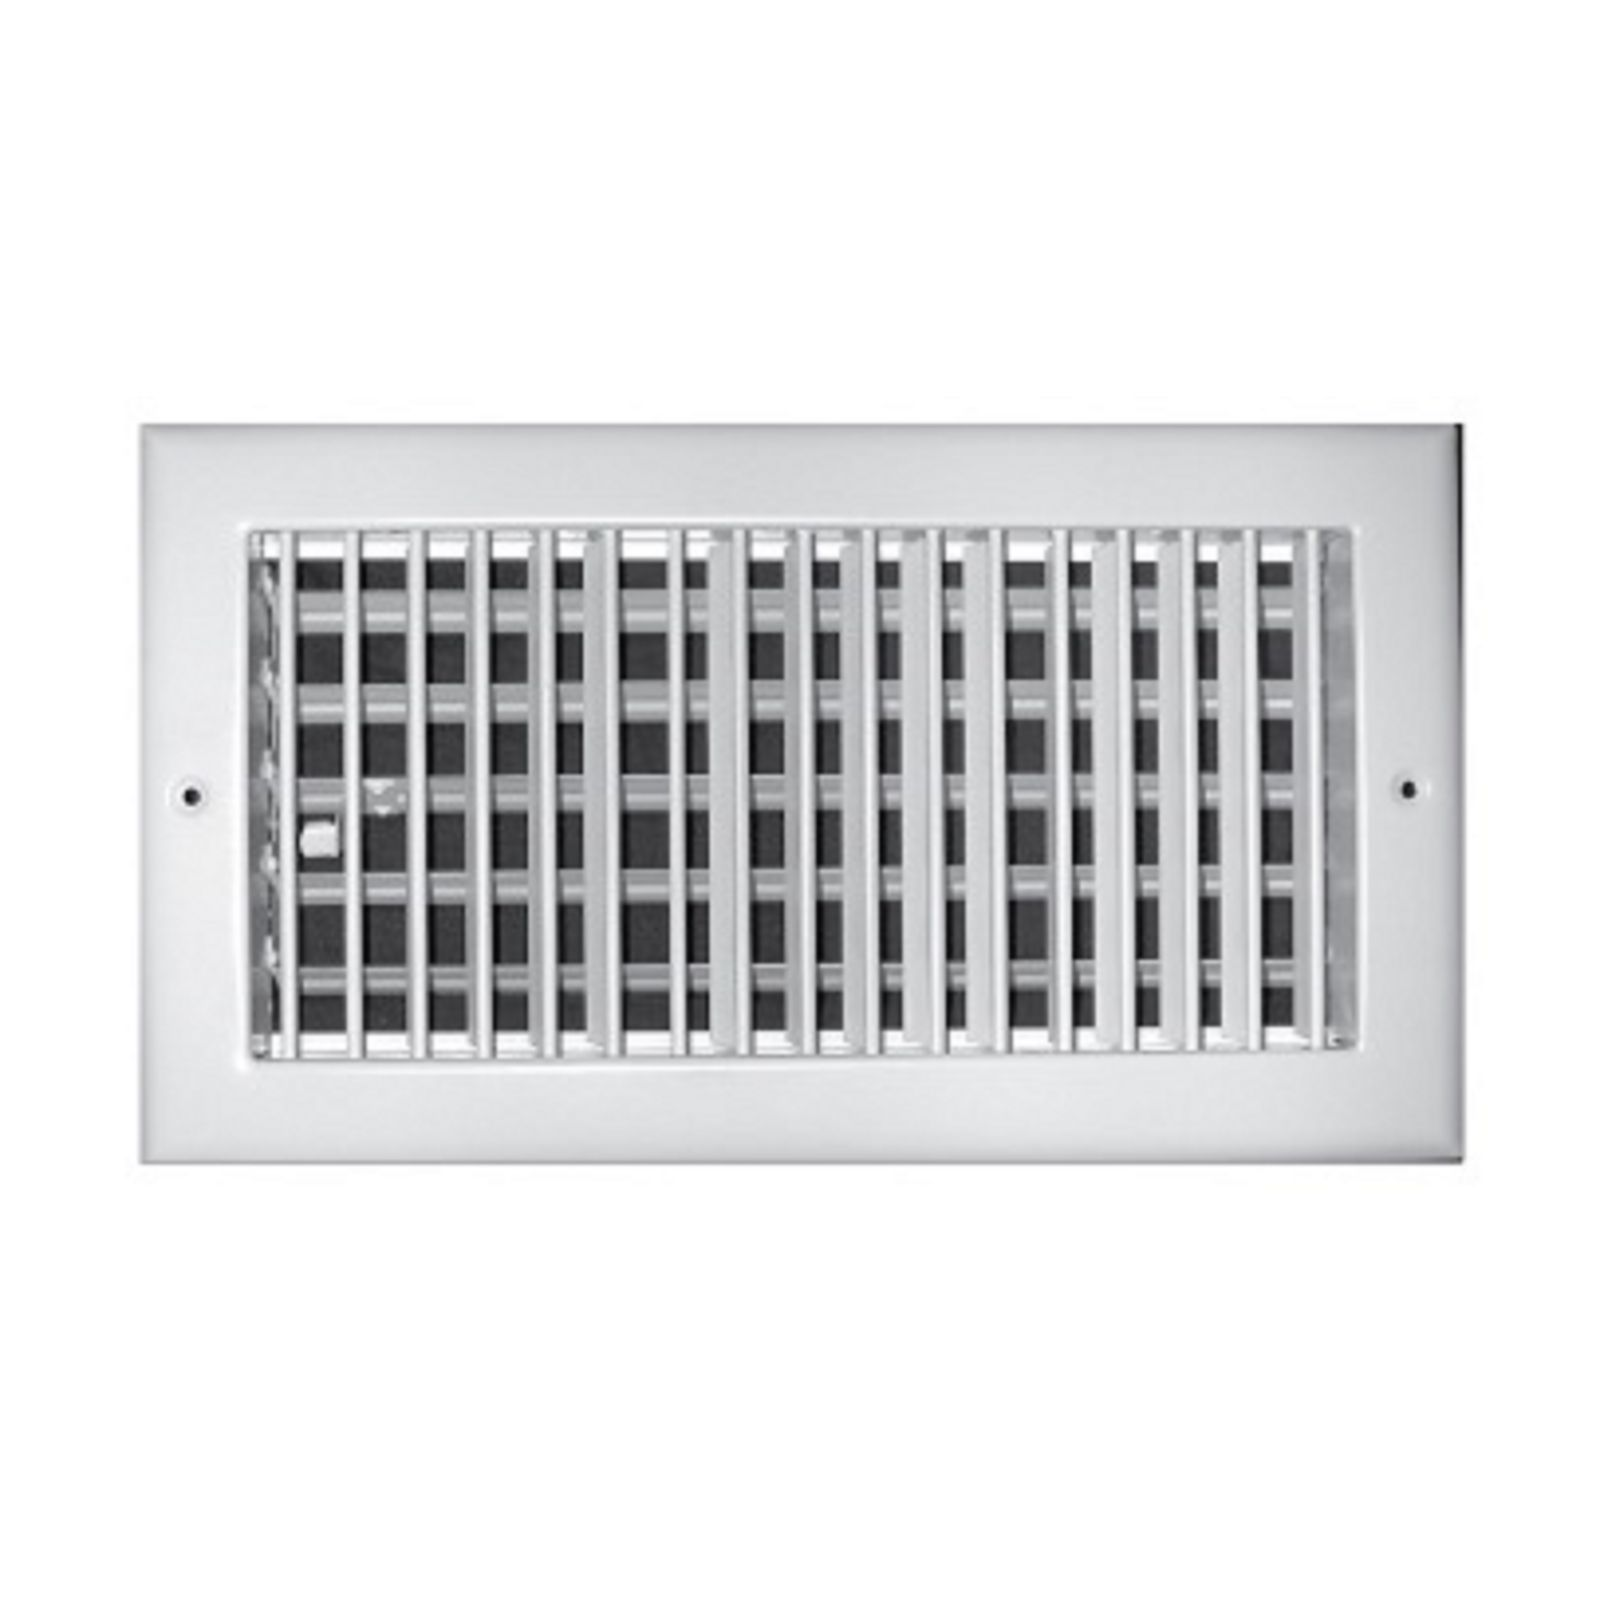 "TRUaire A210VM 08X08 - Aluminum Adjustable 1-Way Wall/Ceiling Register, Vertical, Multi Shutter Damper, White, 08"" X 08"""